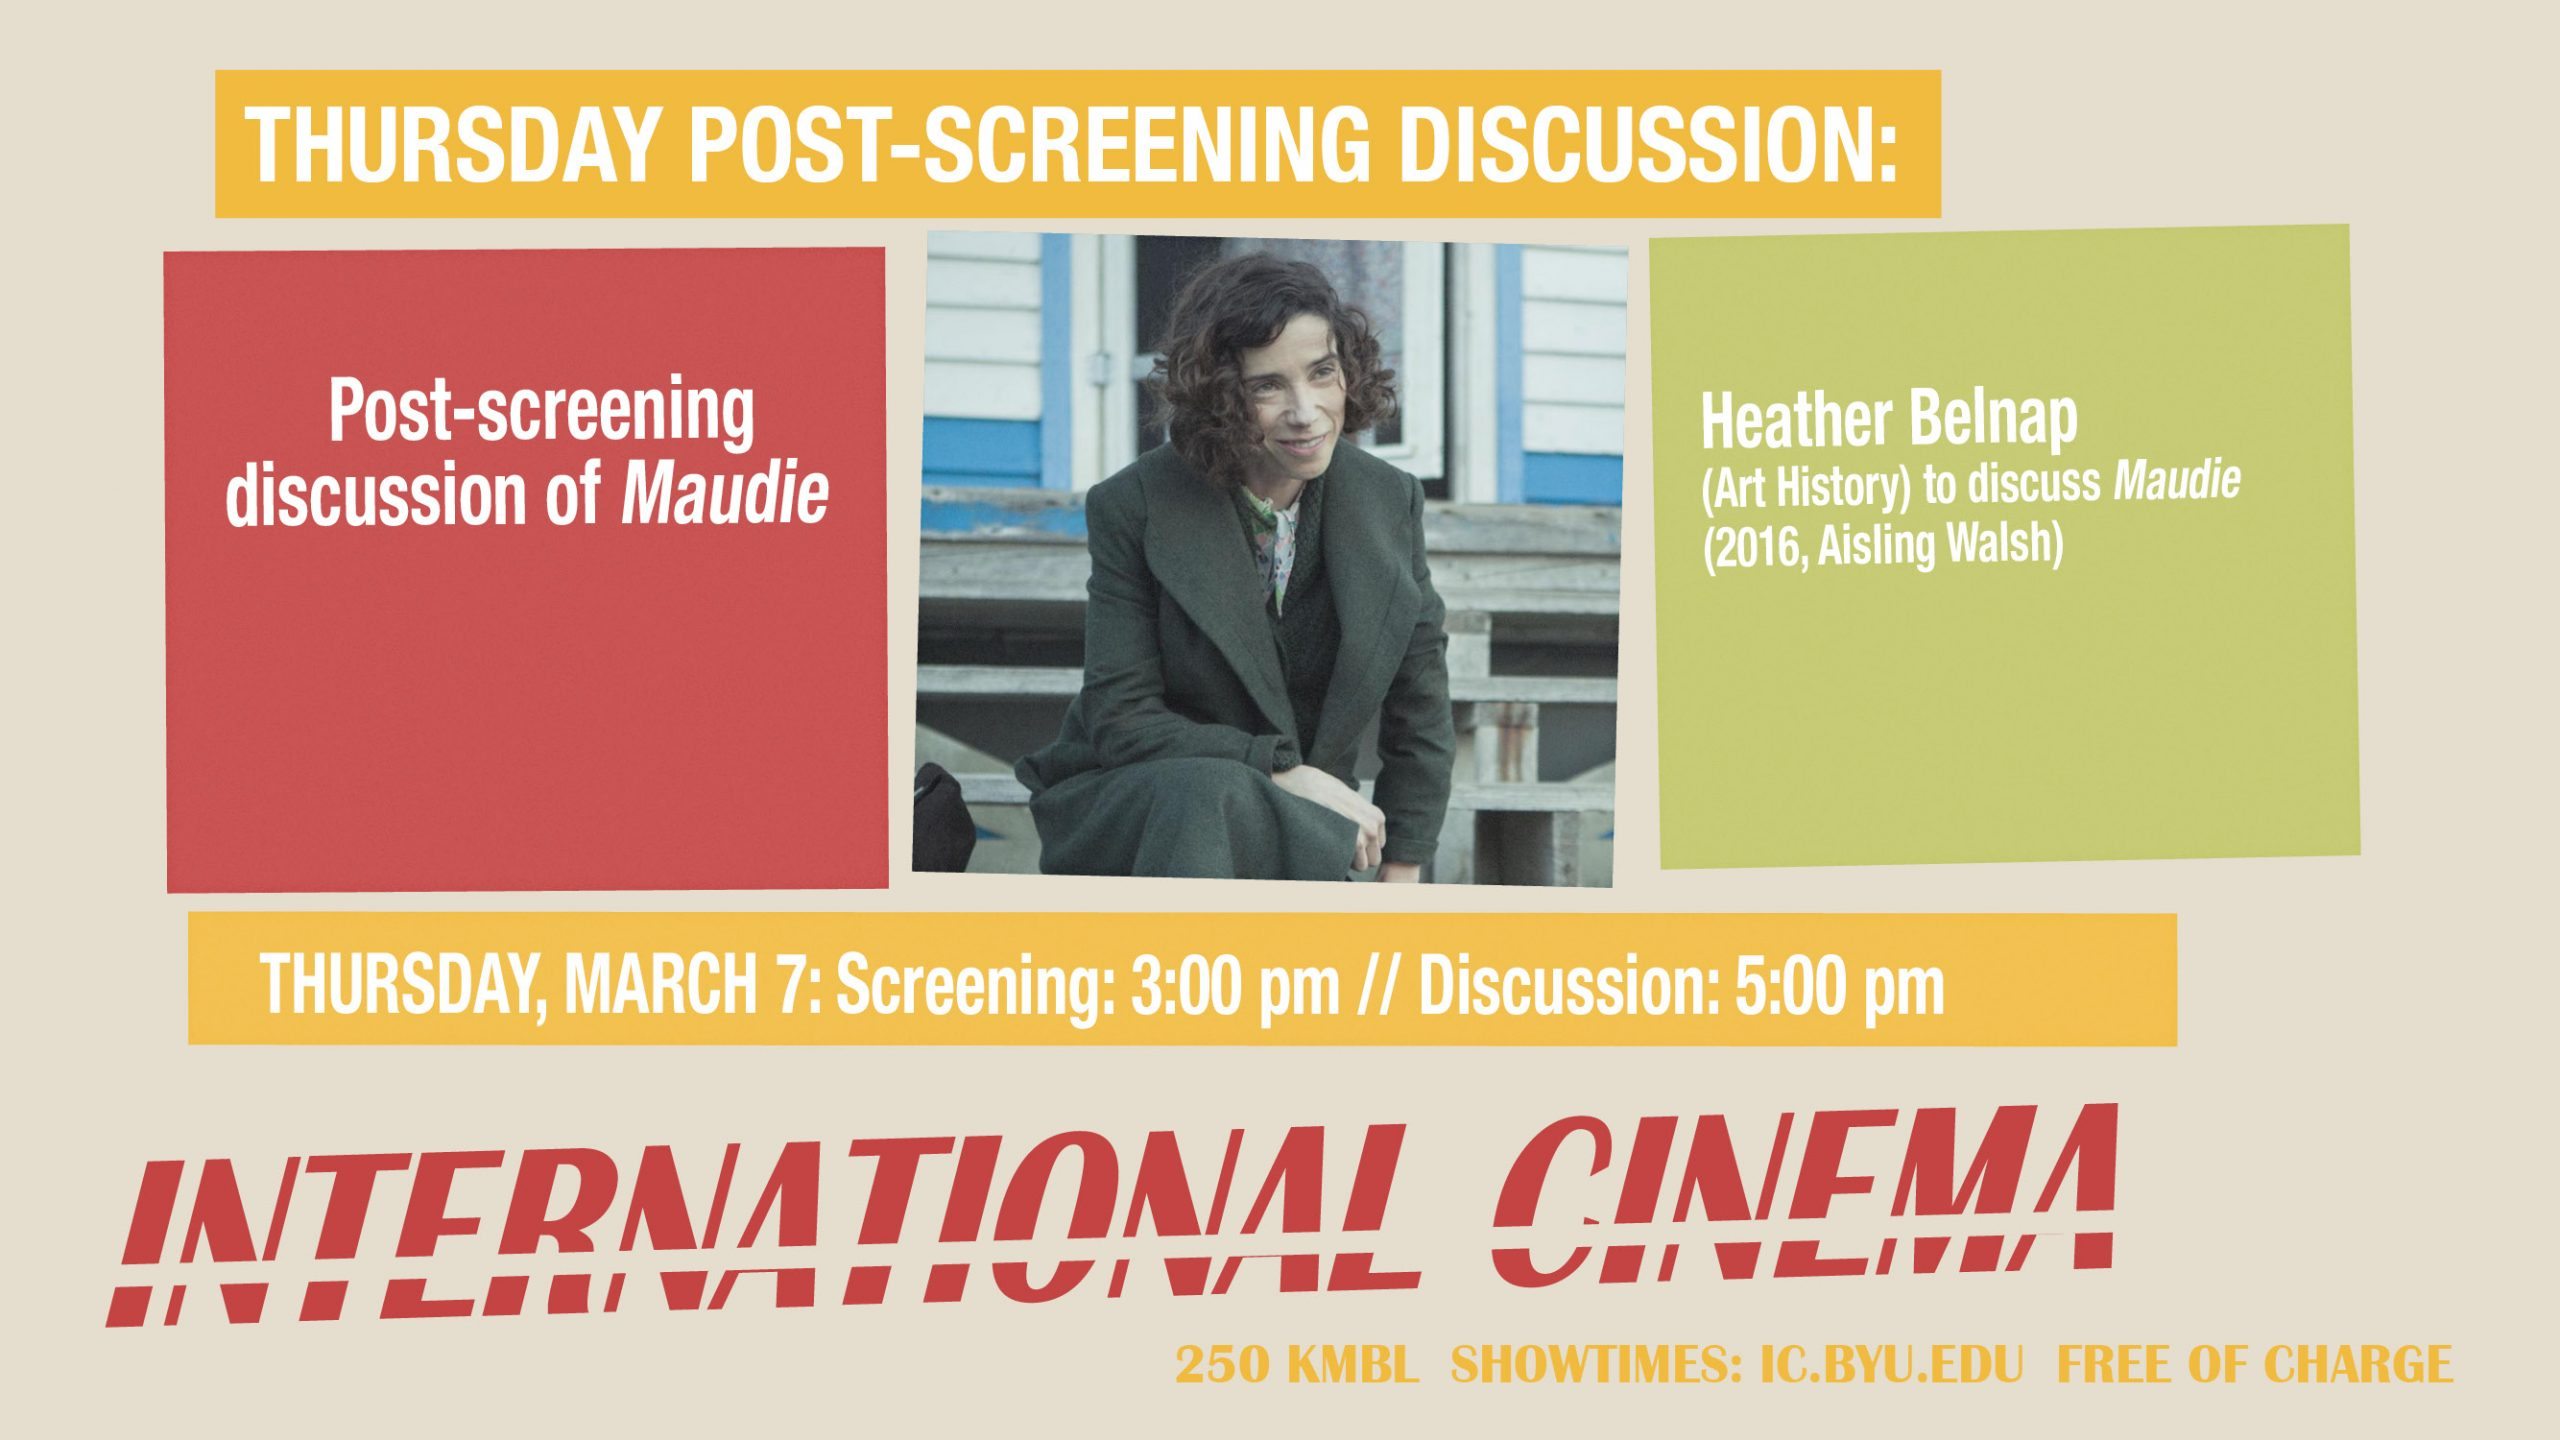 Post-Screening Discussion of Maudie with Prof. Heather Belnap